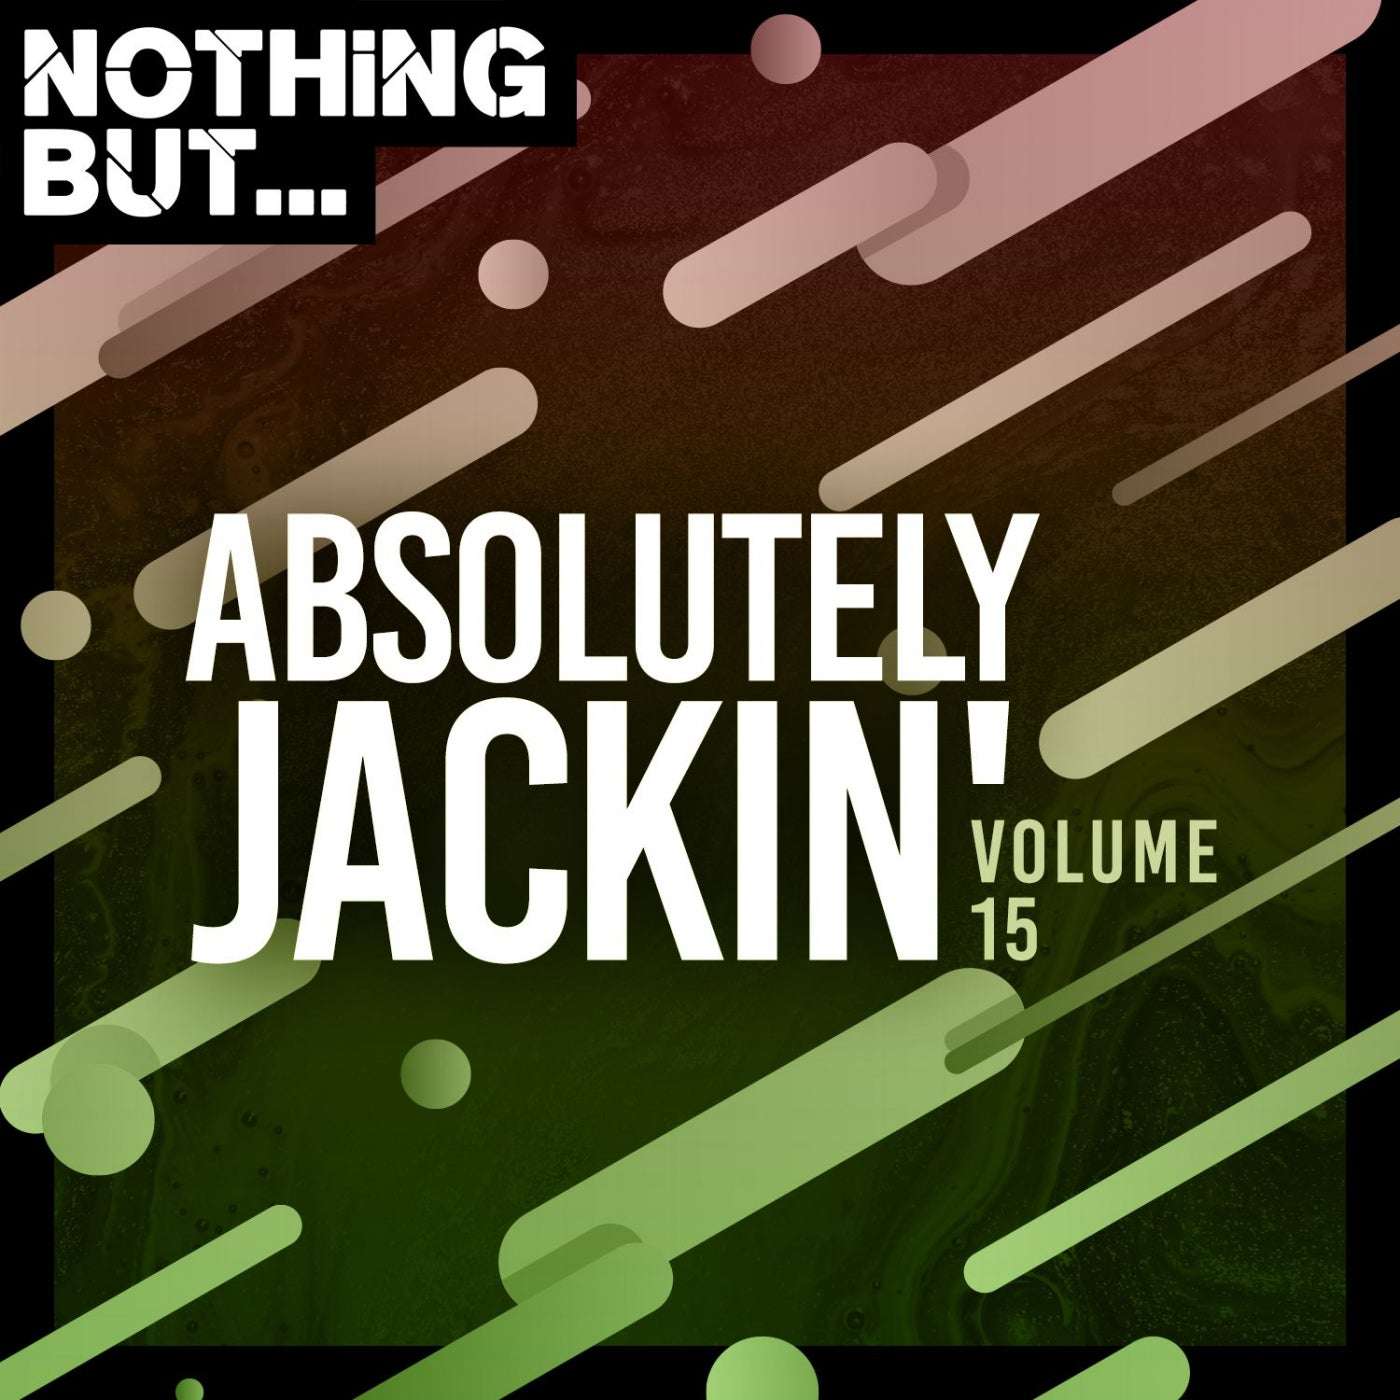 Various Performers - Nothing But Absolutely Jackin', Vol. 15 (2021)